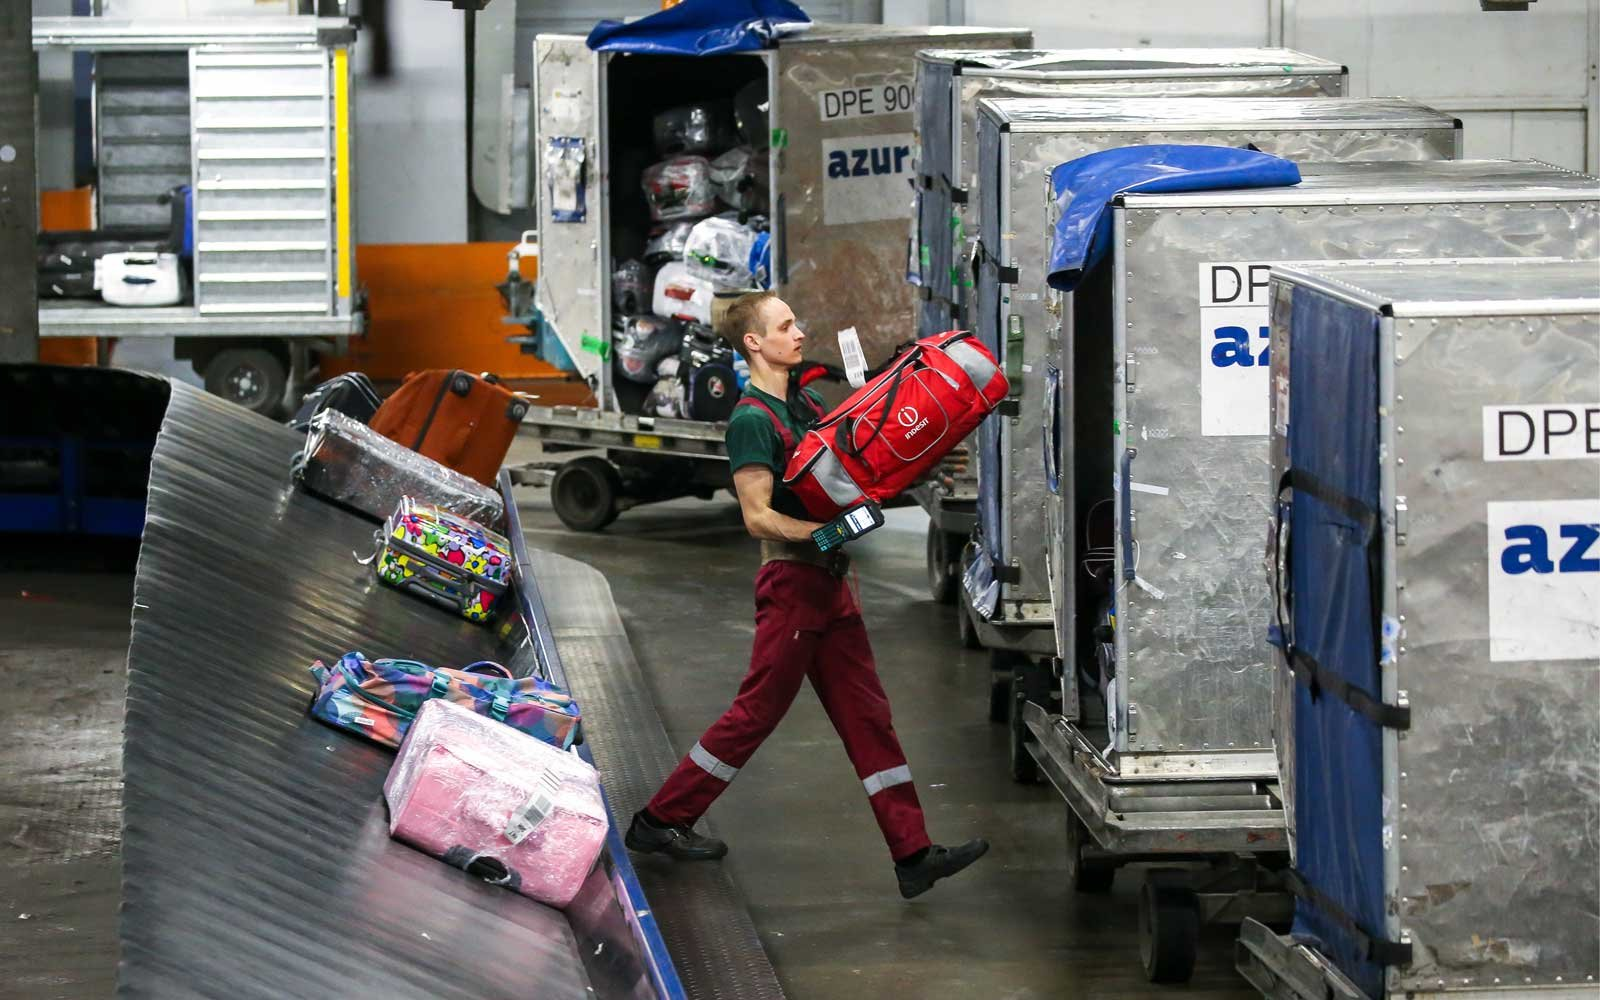 Handling baggage at Moscow's Domodedovo Airport